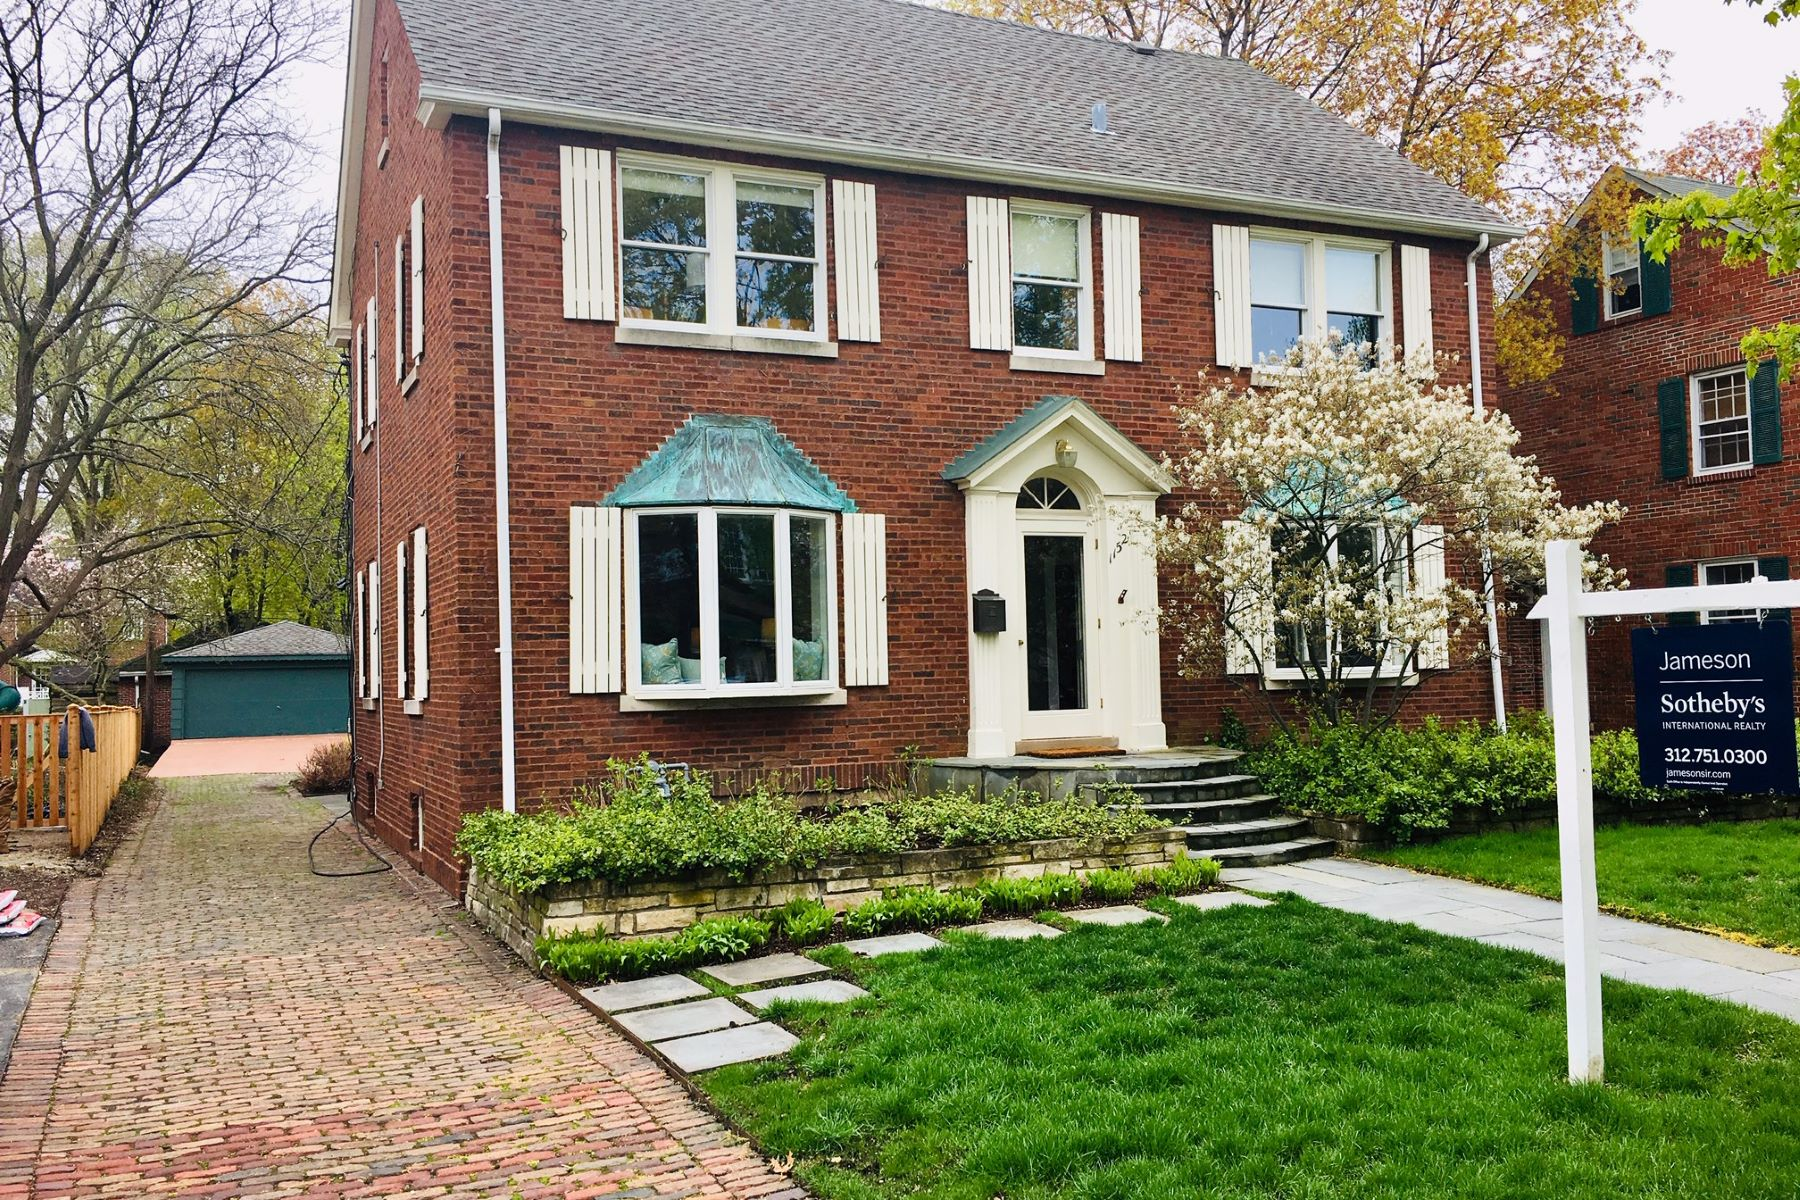 Single Family Home for Sale at Exquisite Red Brick Colonial 1152 Oak Street Winnetka, Illinois 60093 United States